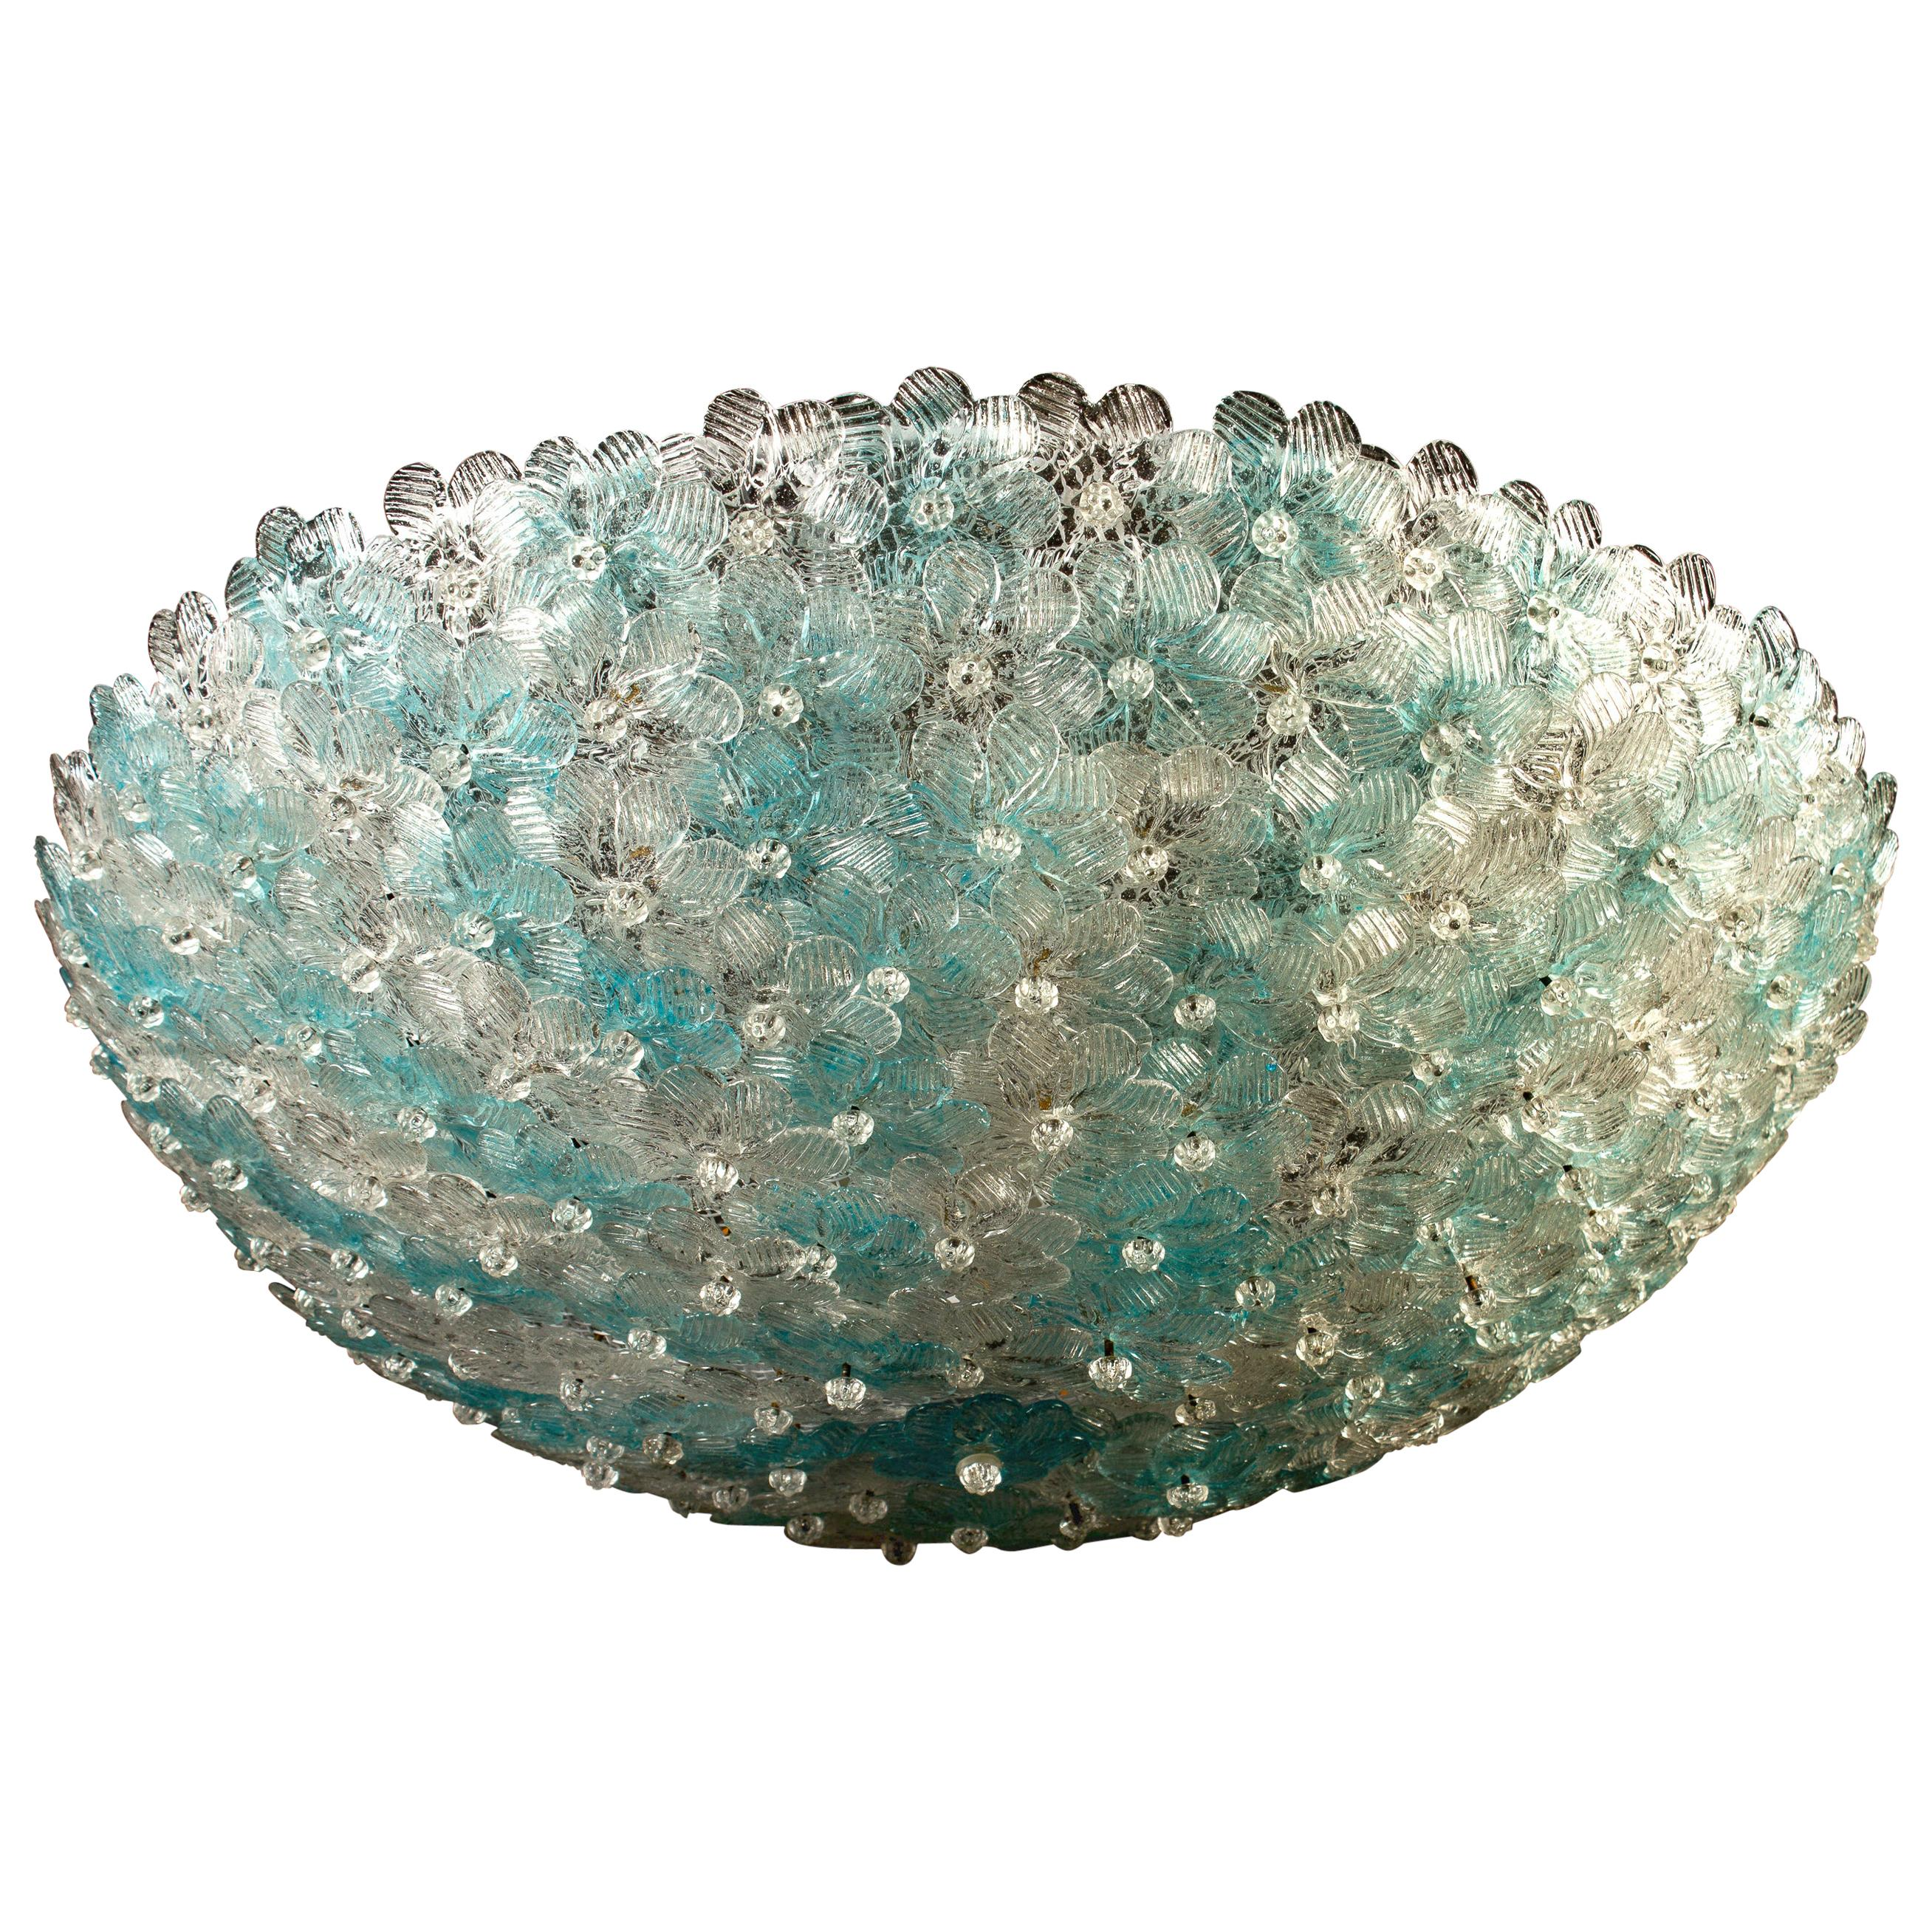 Aquamarine and Ice Murano Glass Flowers Basket Ceiling Light by Barovier & Toso